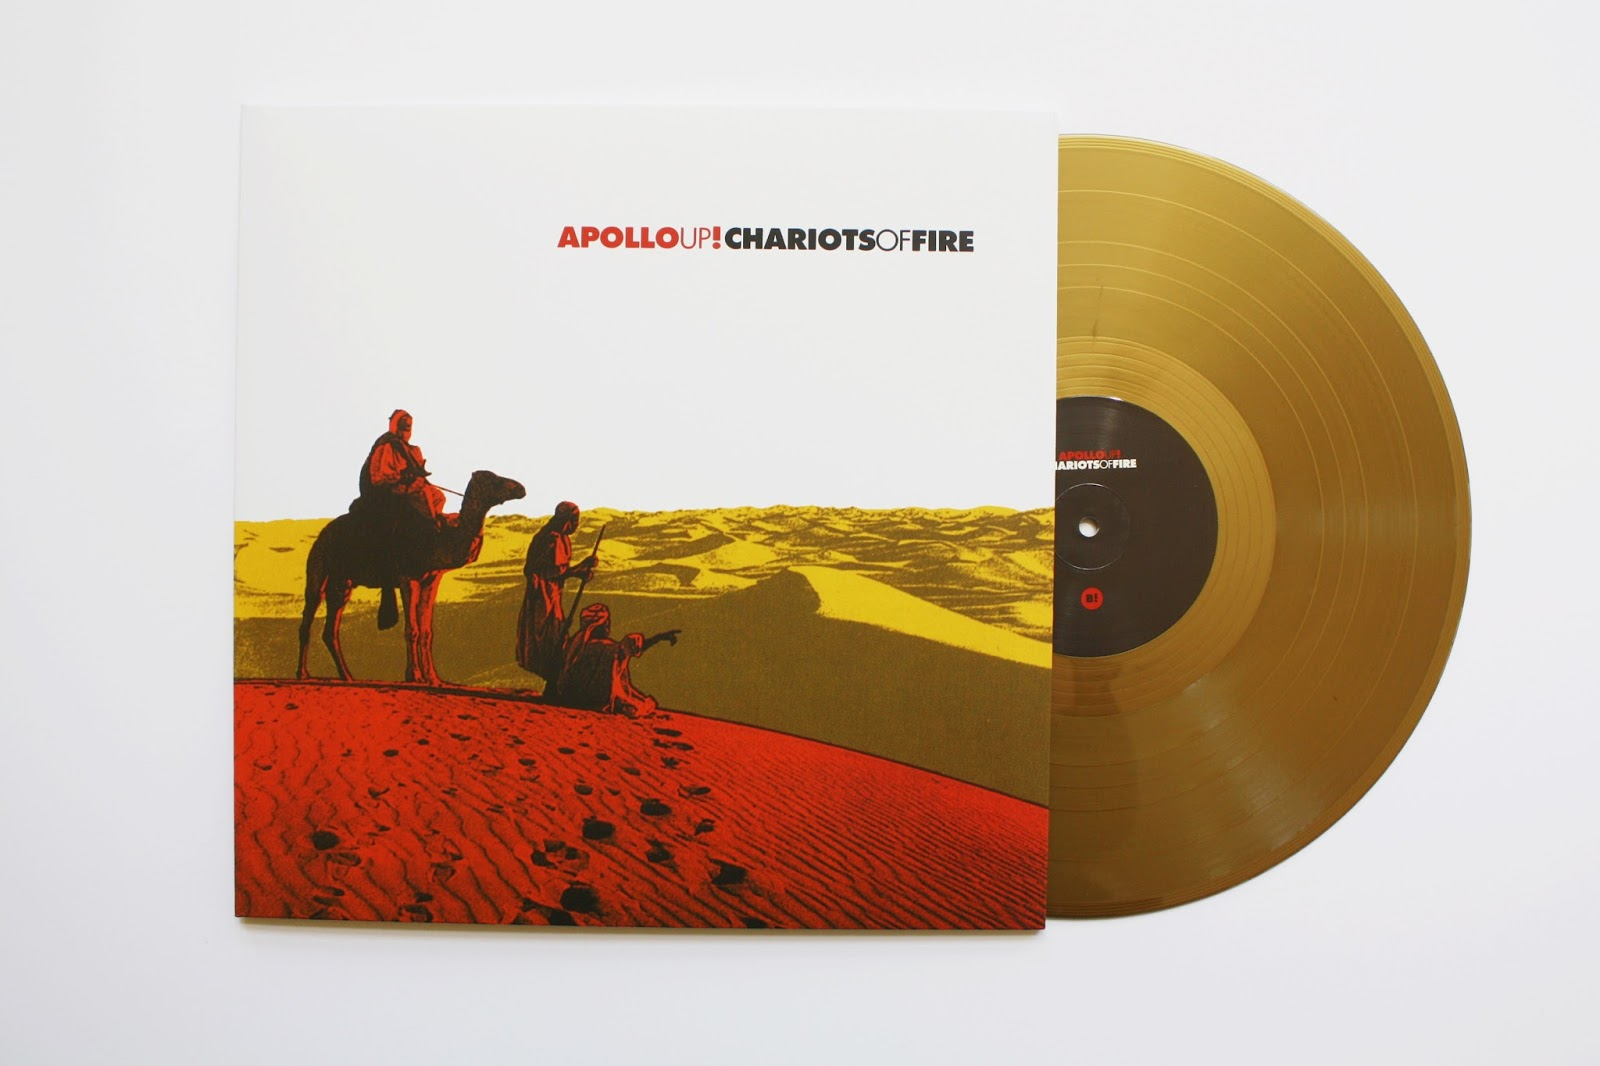 Apollo Up! Chariots of Fire vinyl